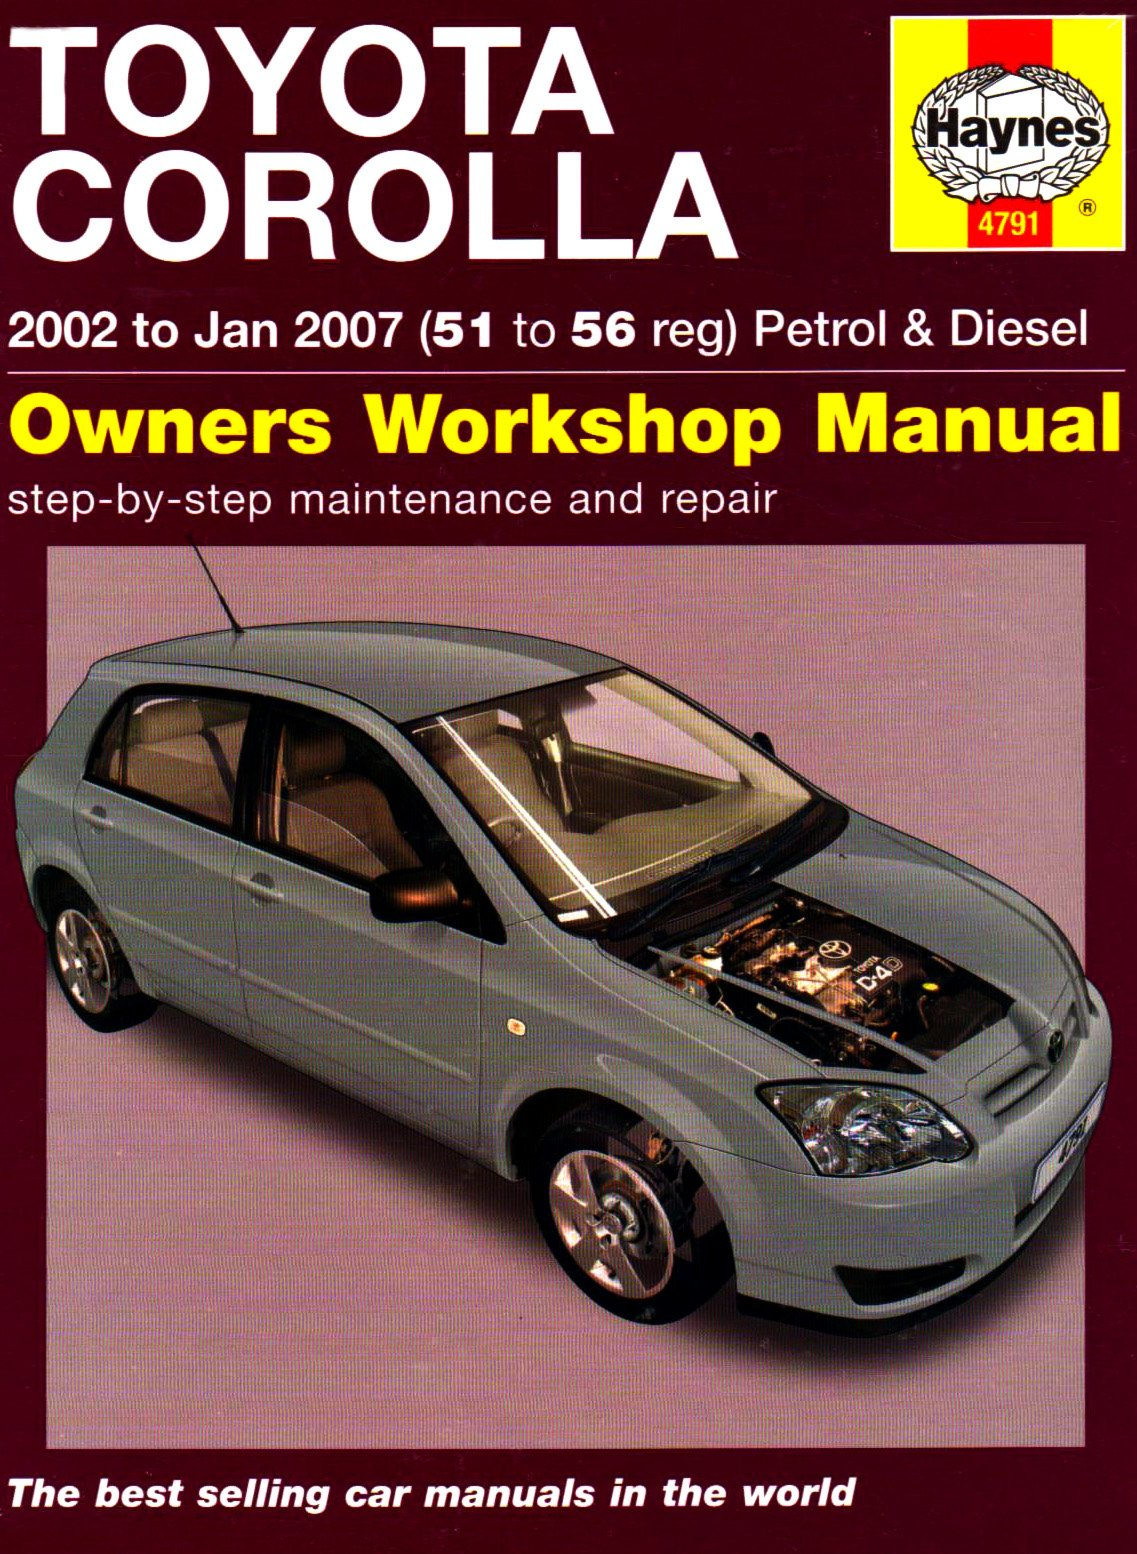 Ebook-4272] parts user manual 2003 toyota corolla manual | 2019.